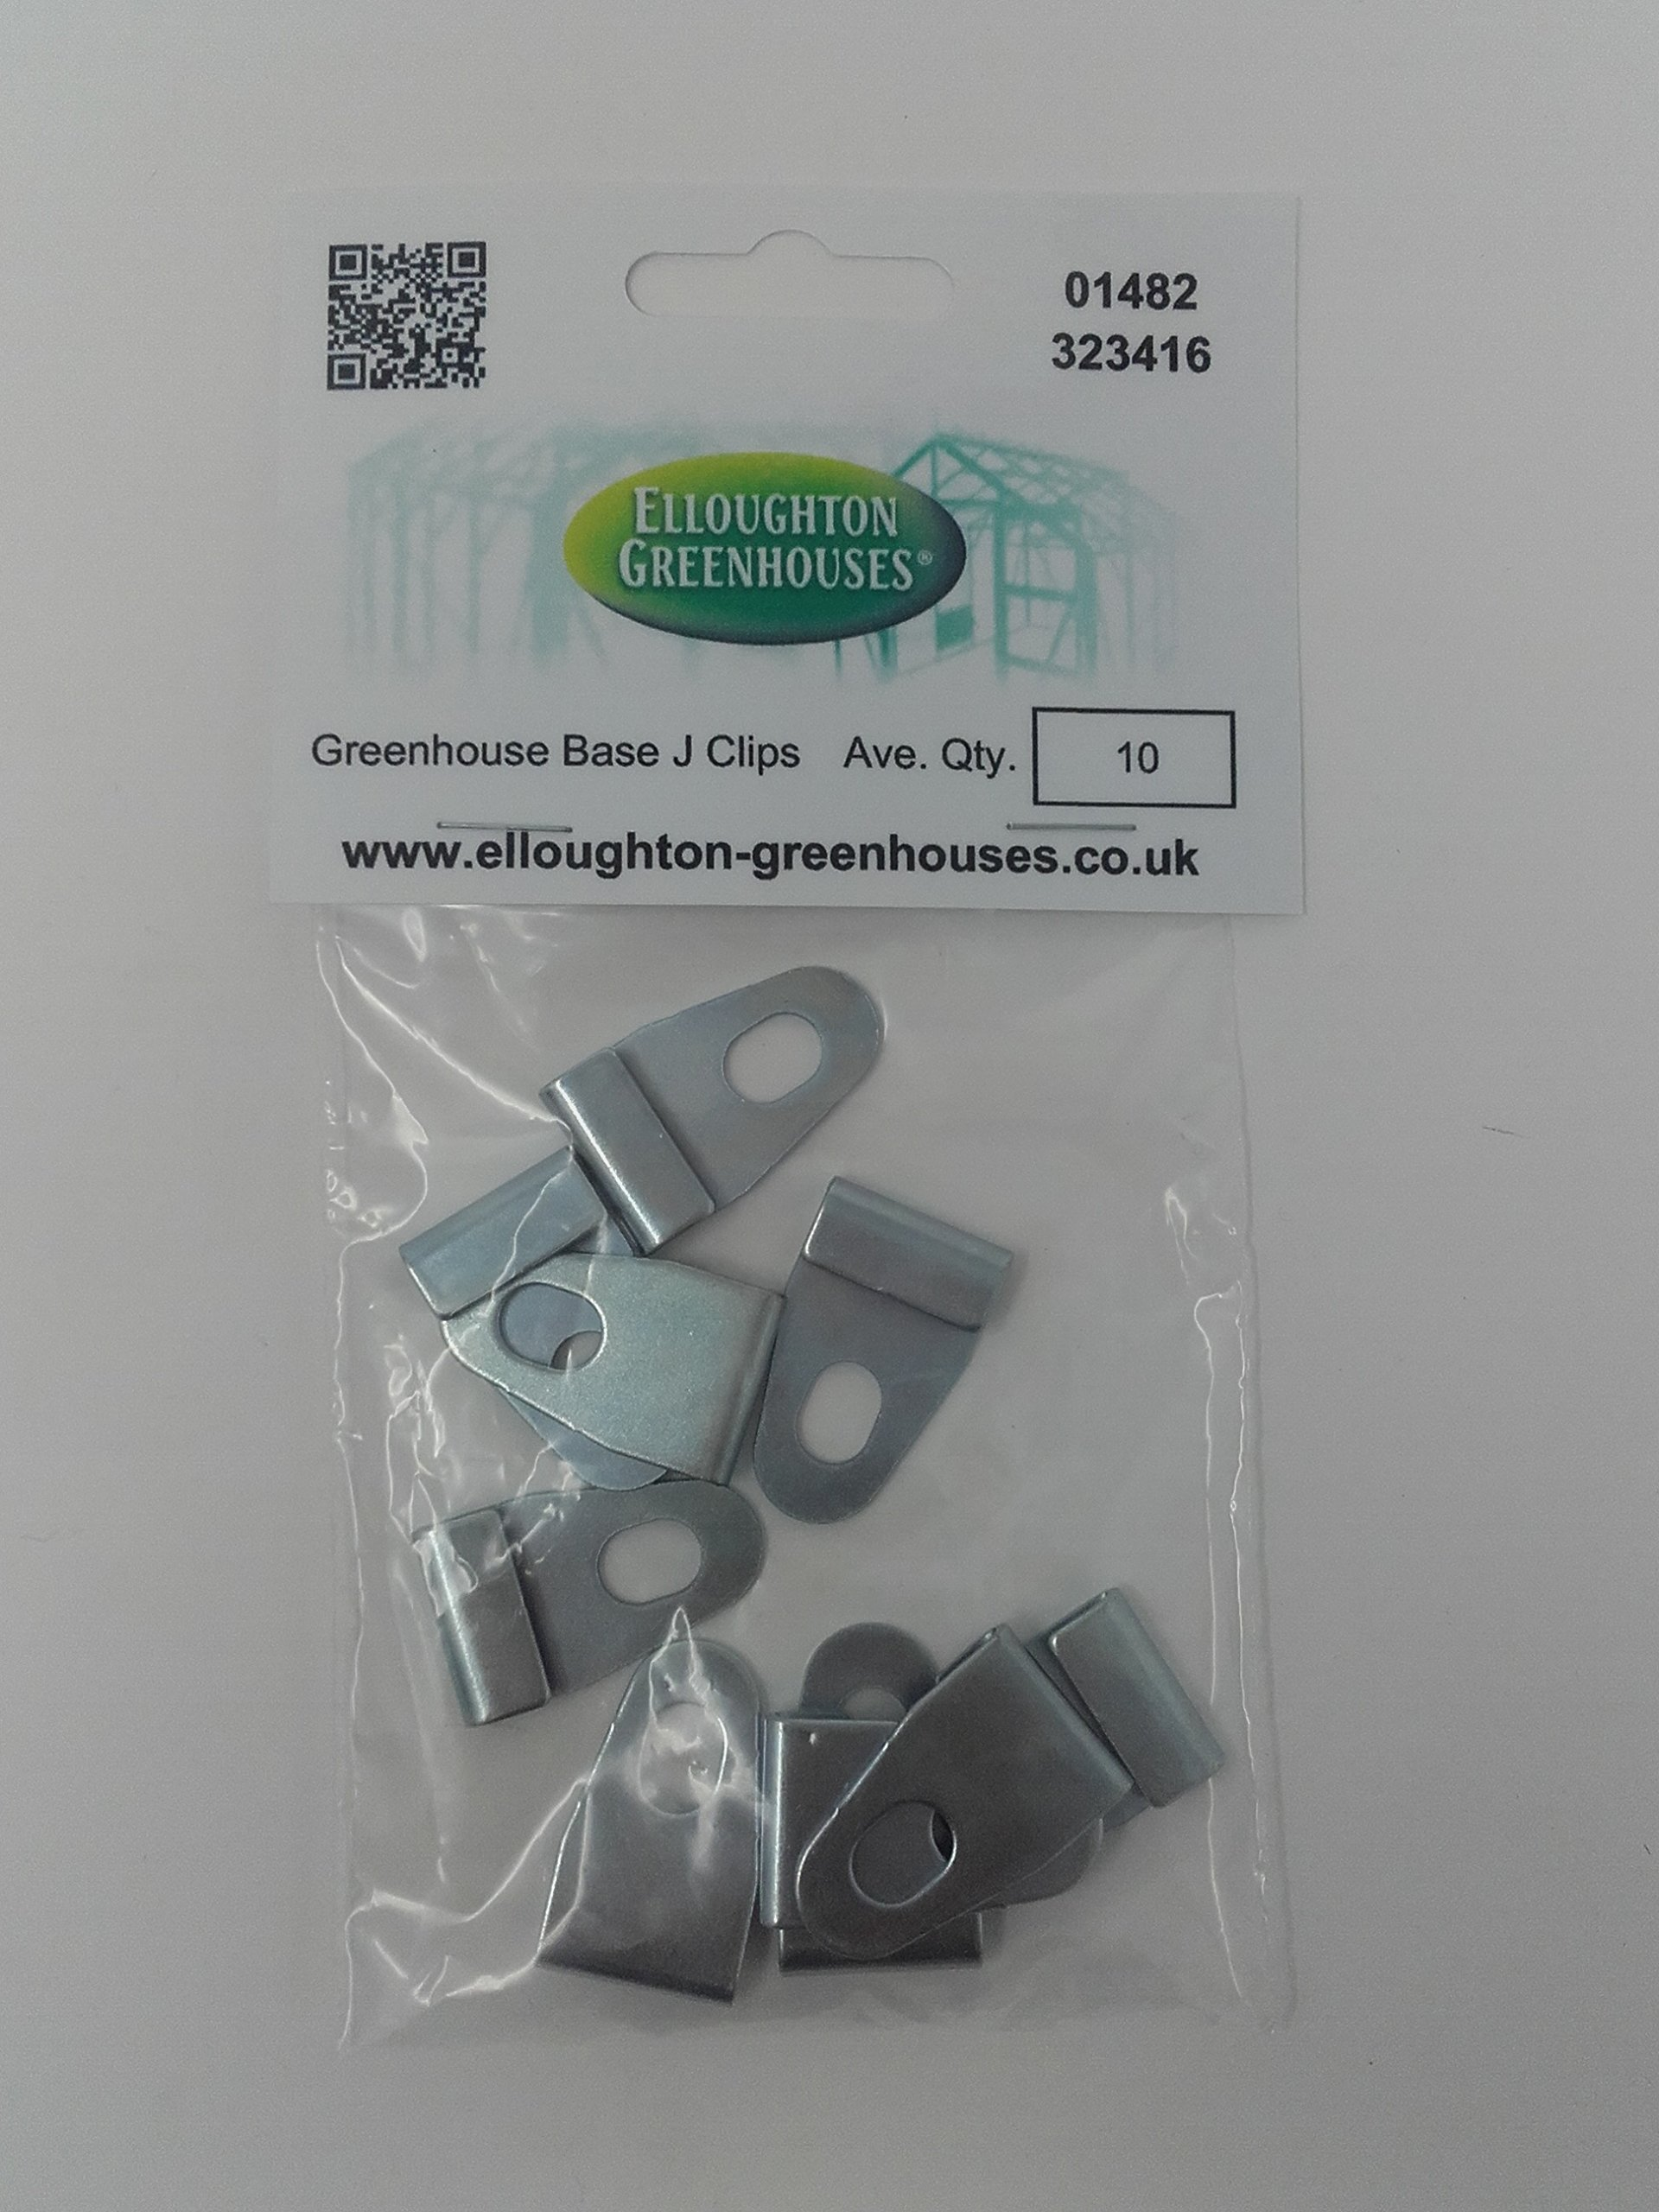 SupaGarden W Glazing Clips Greenhouse Clips Pack of 25